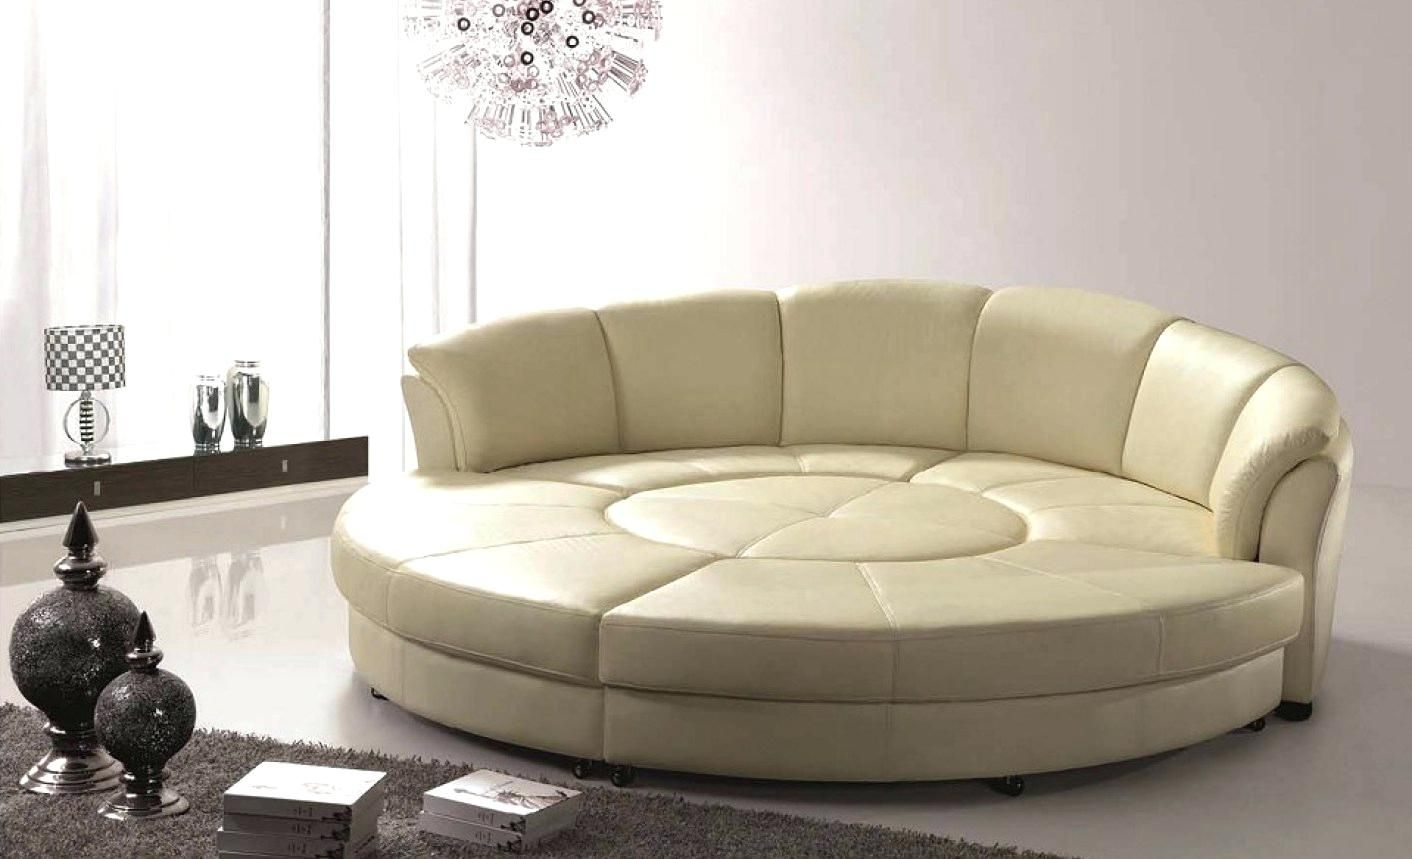 Halifax Sectional Sofas Round Sofa Leather Sofa Bed Sectional